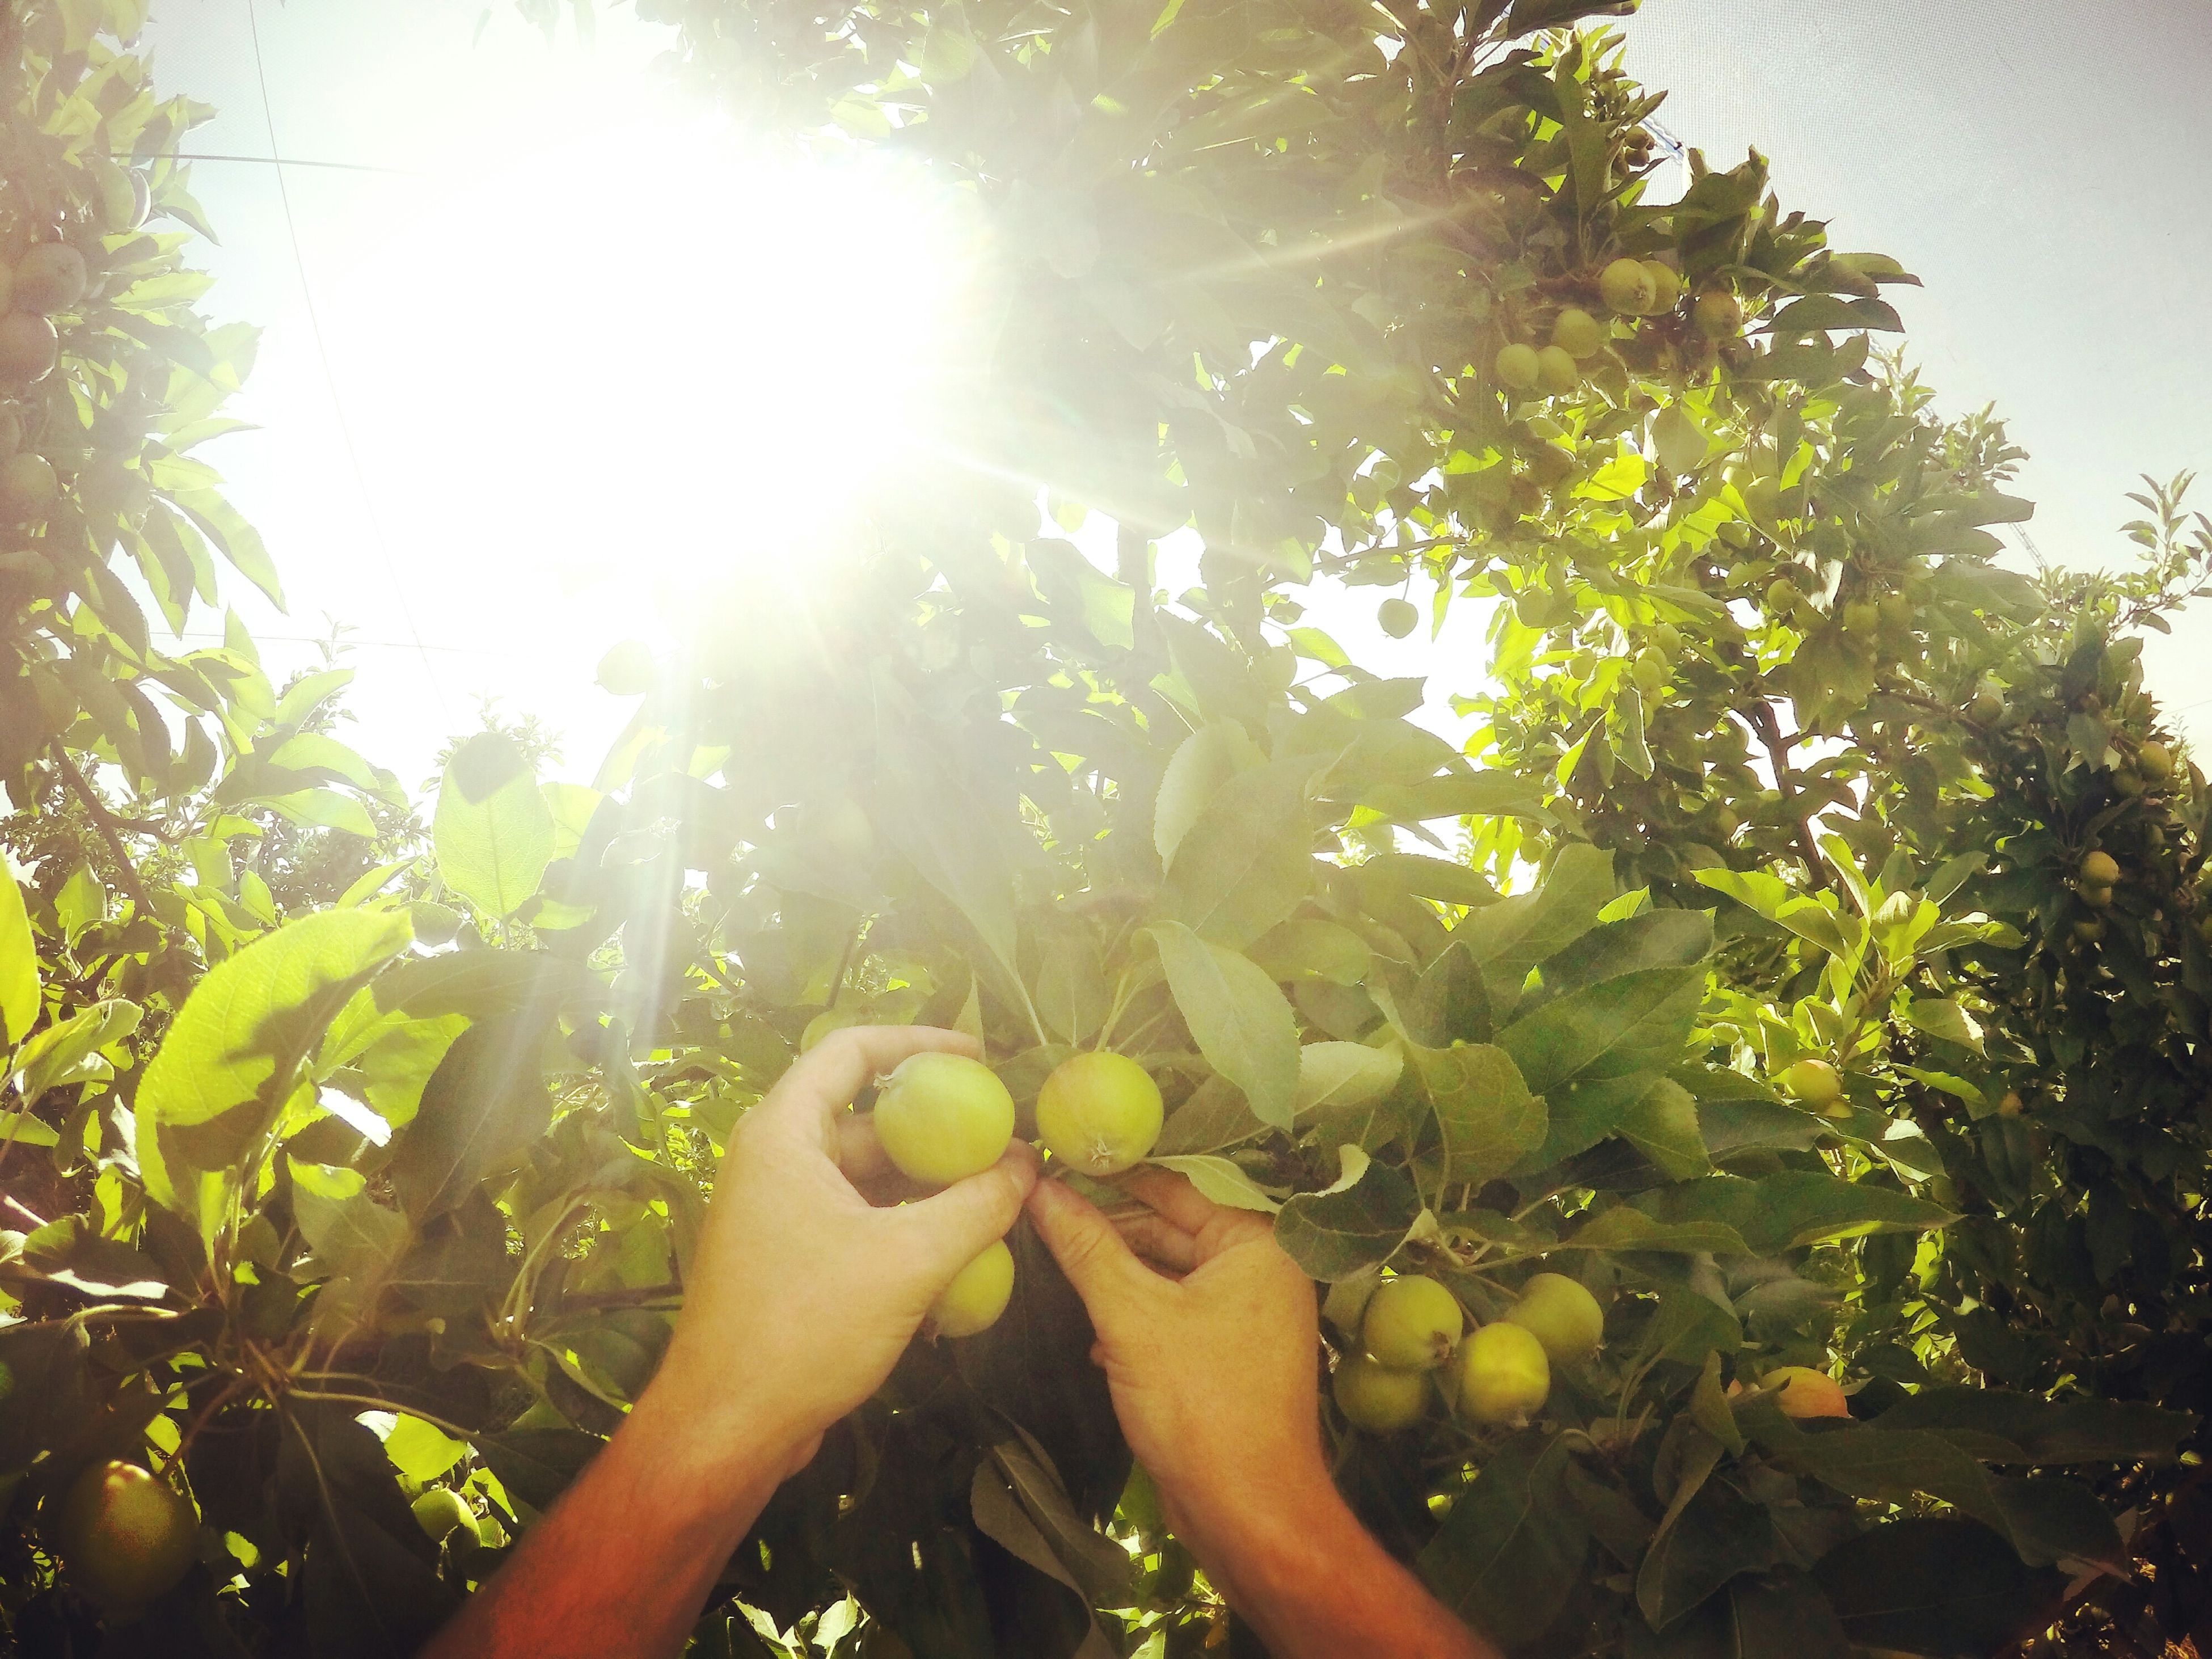 tree, sun, sunbeam, sunlight, lens flare, growth, low angle view, person, sunny, nature, branch, part of, leaf, day, bright, back lit, holding